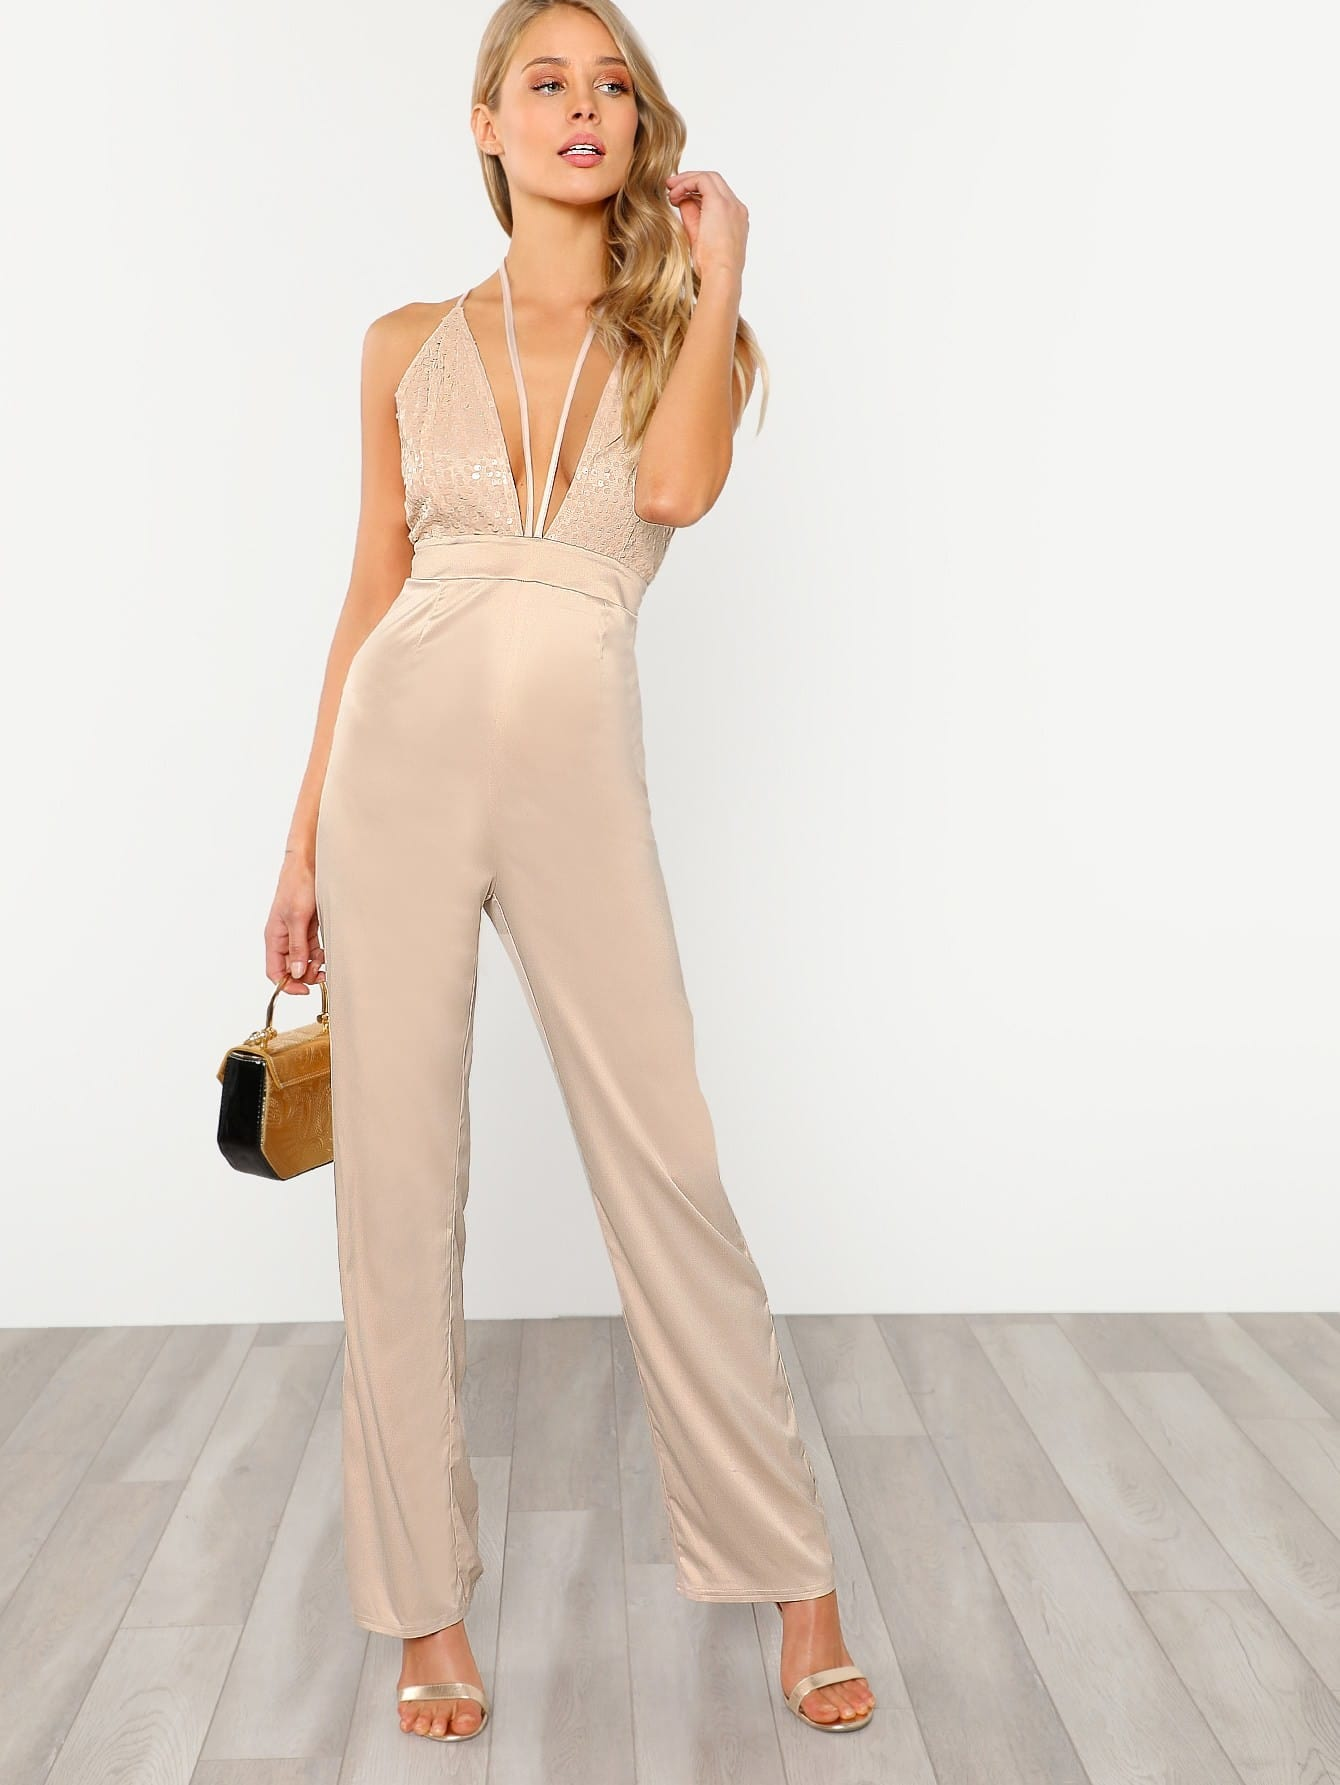 Halter Detail Plunge Sequin Bodice Jumpsuit contrast halter and binding layered ruffle bodice jumpsuit